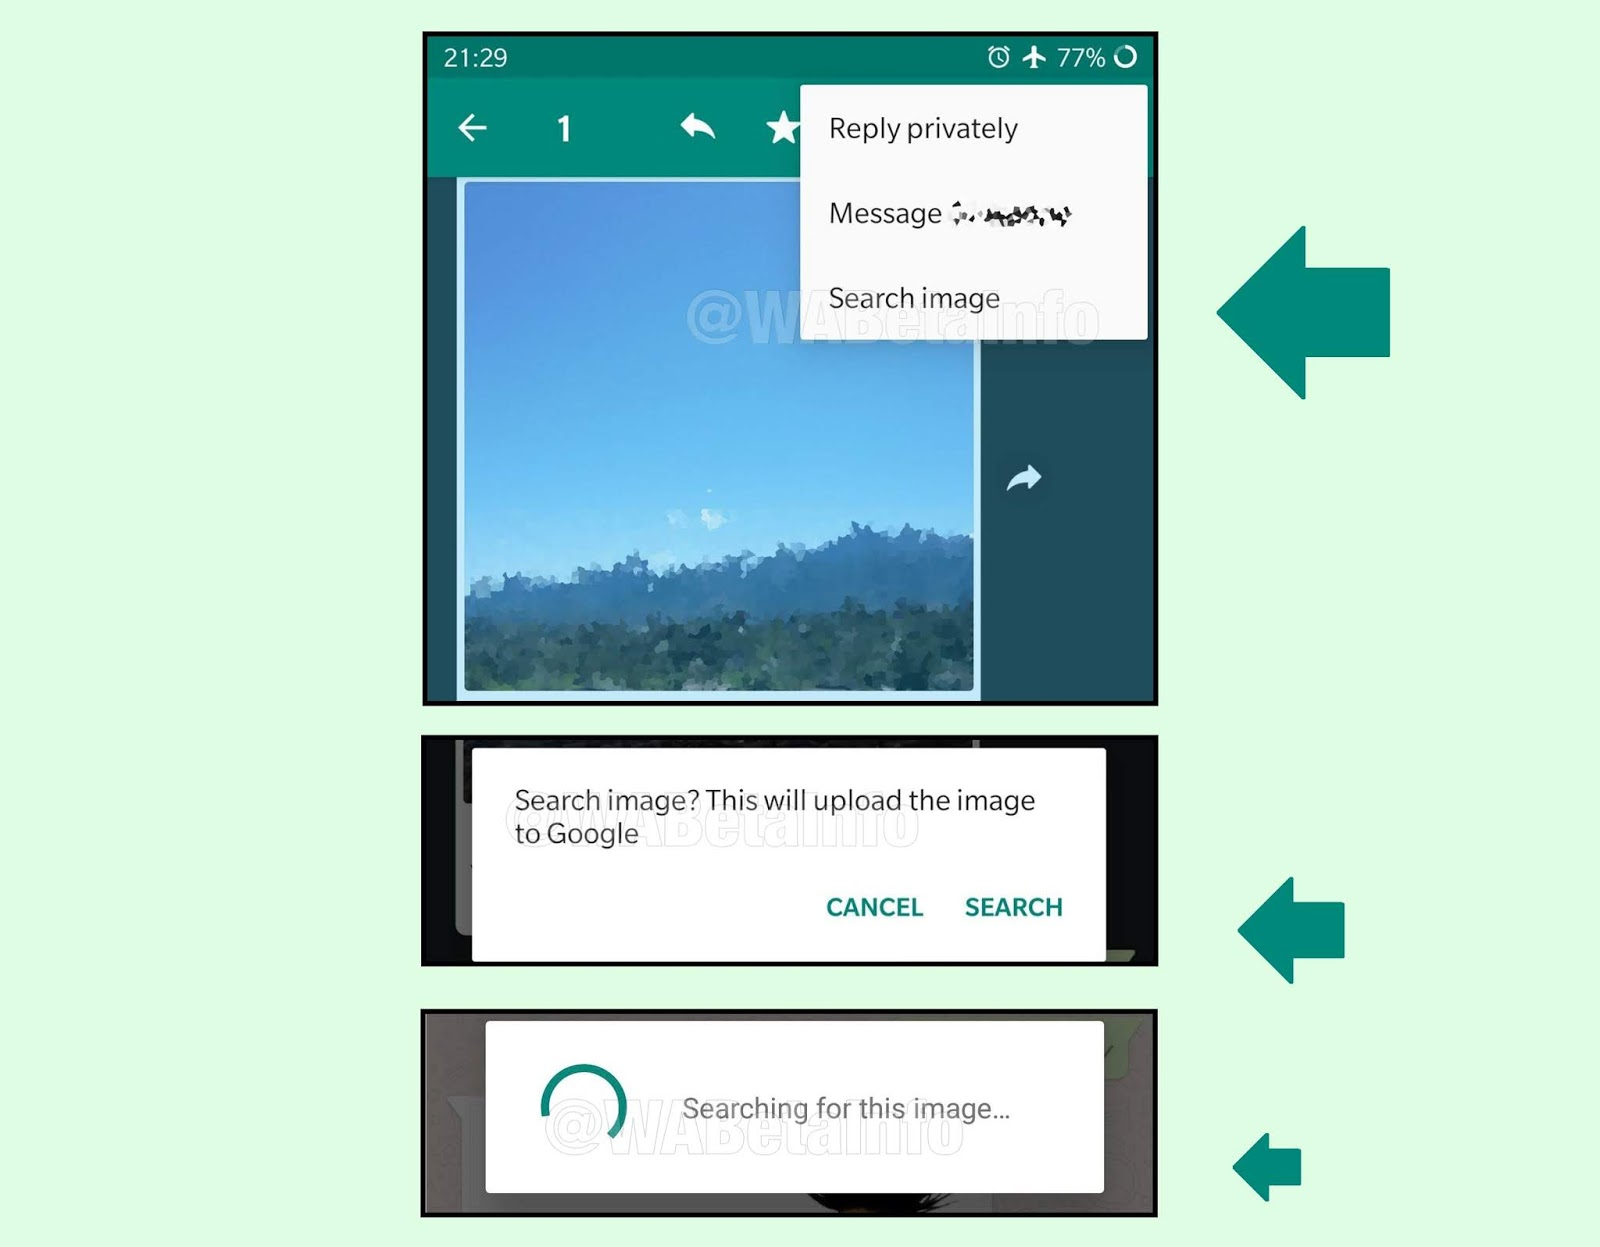 WhatsApp Is testing 'Search Image' Feature, and Transgender Emoji Flag